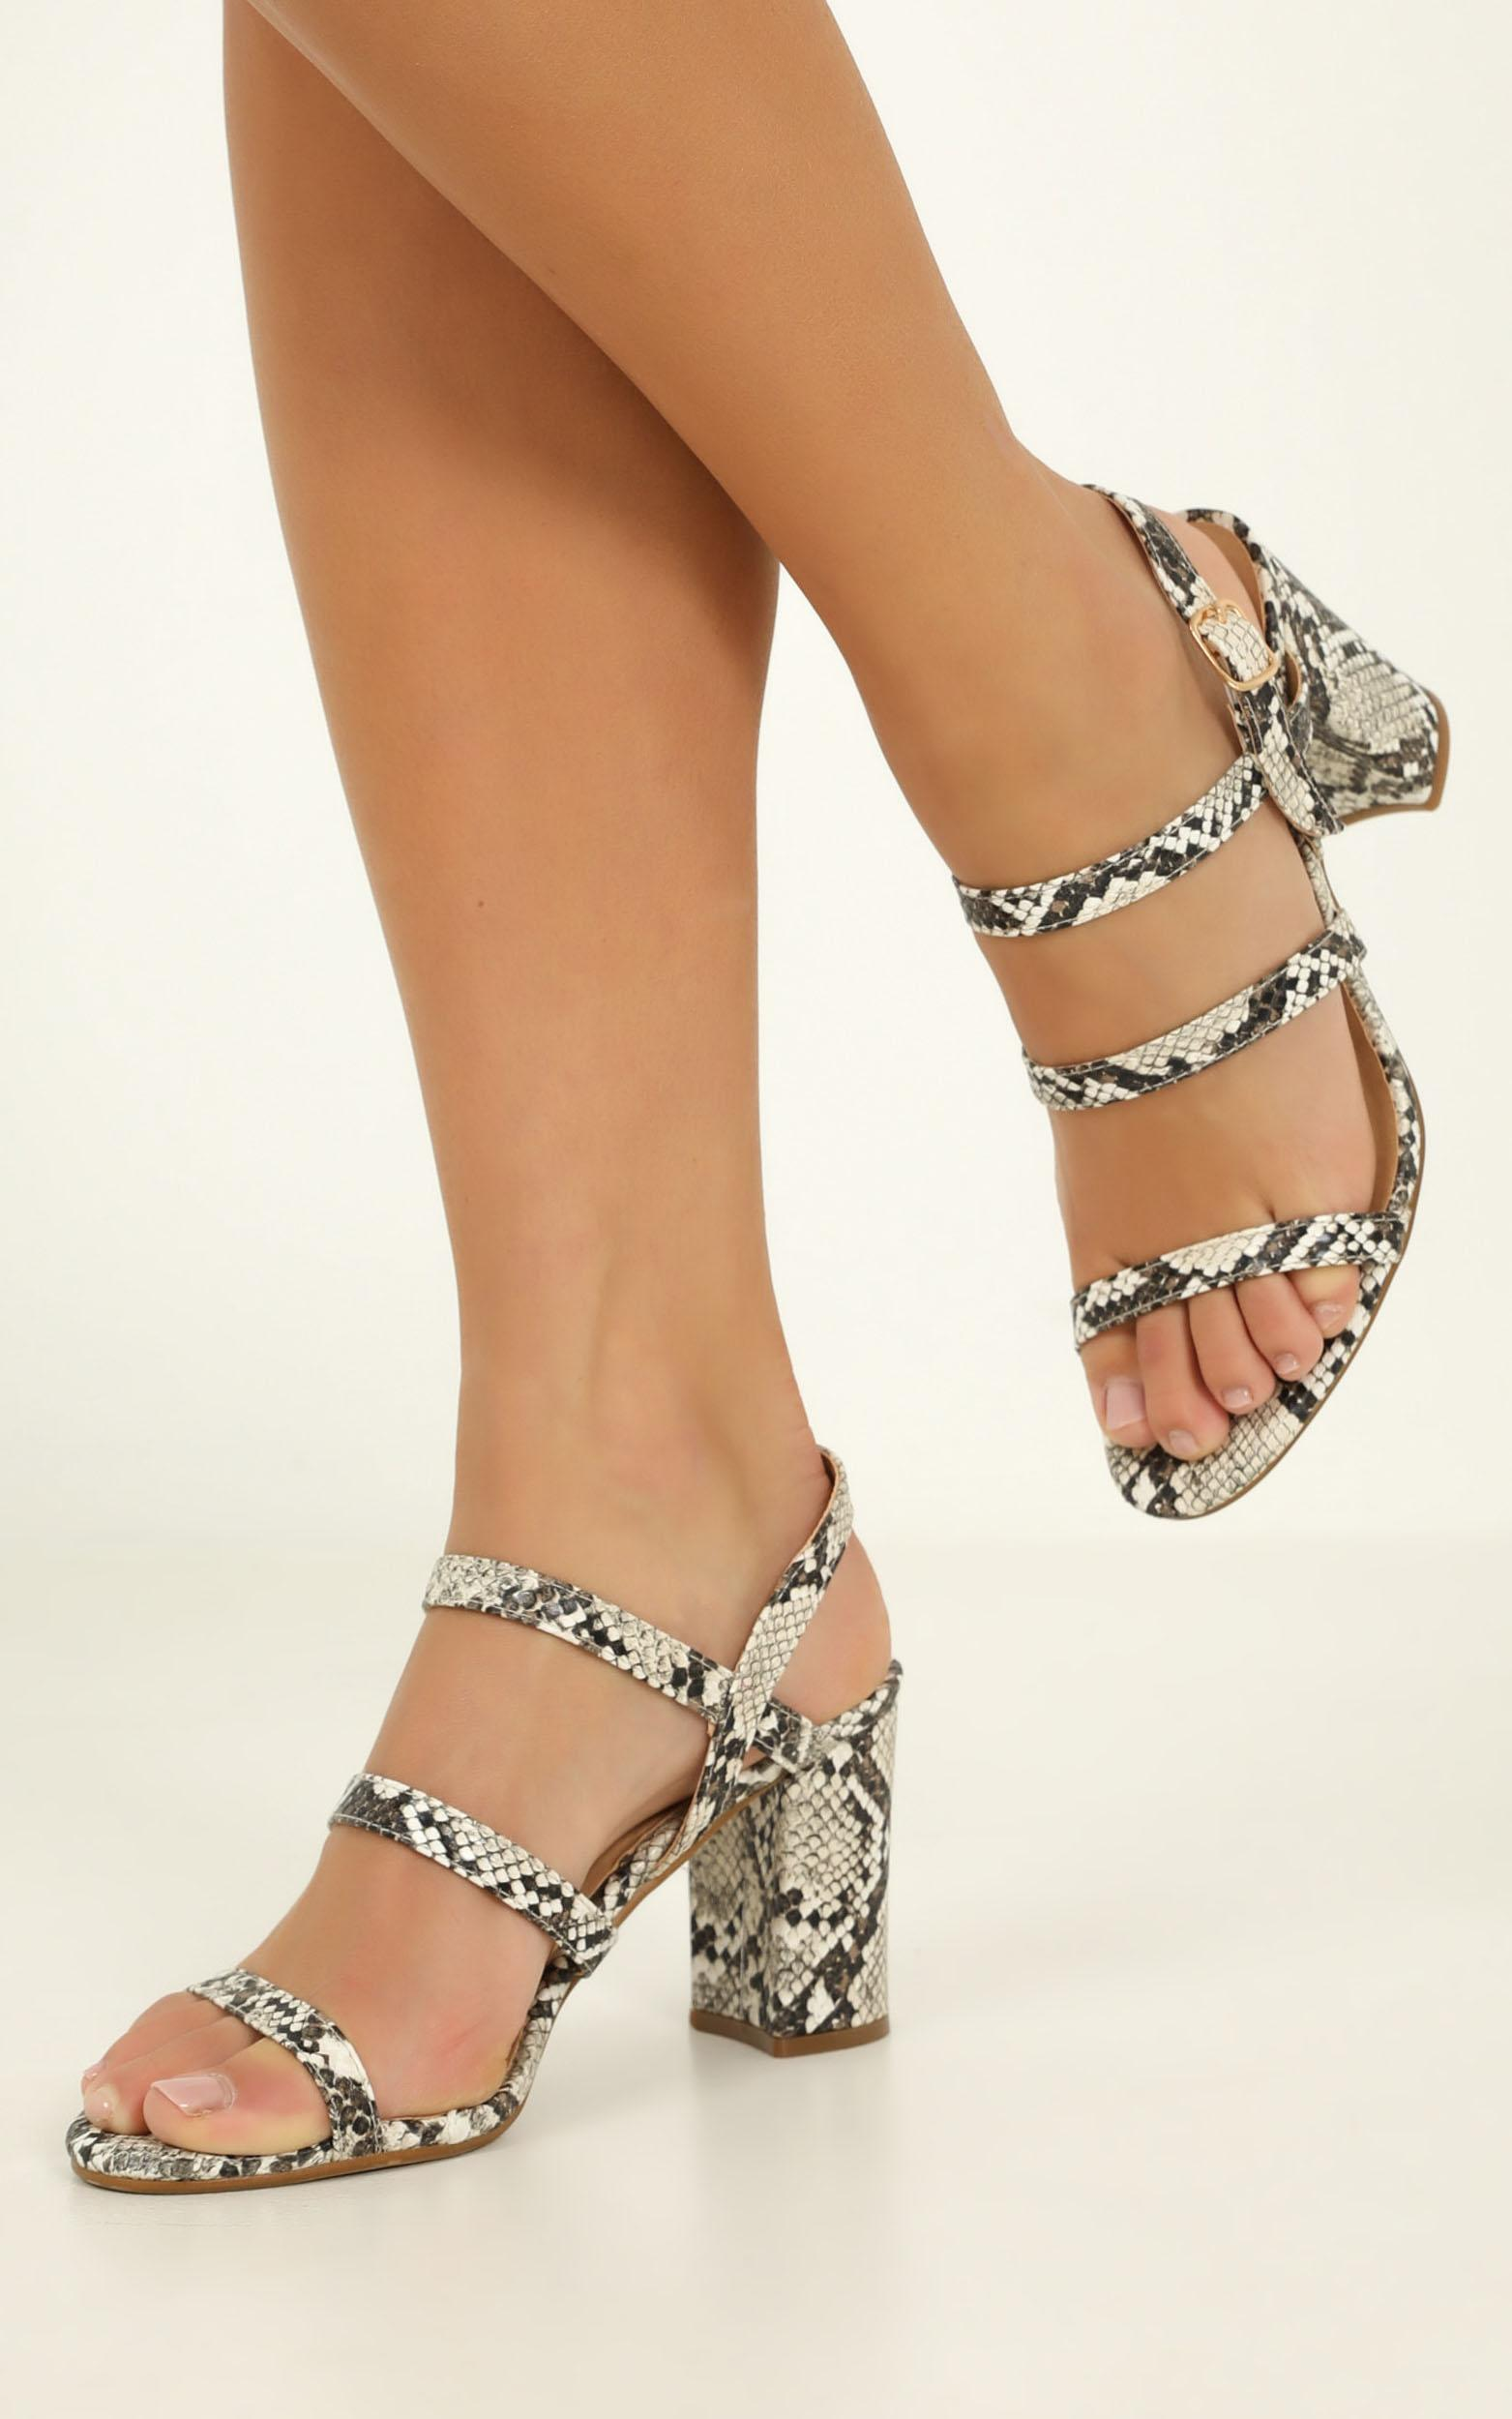 Billini - Raiya heels in cream snake - 10, Grey, hi-res image number null